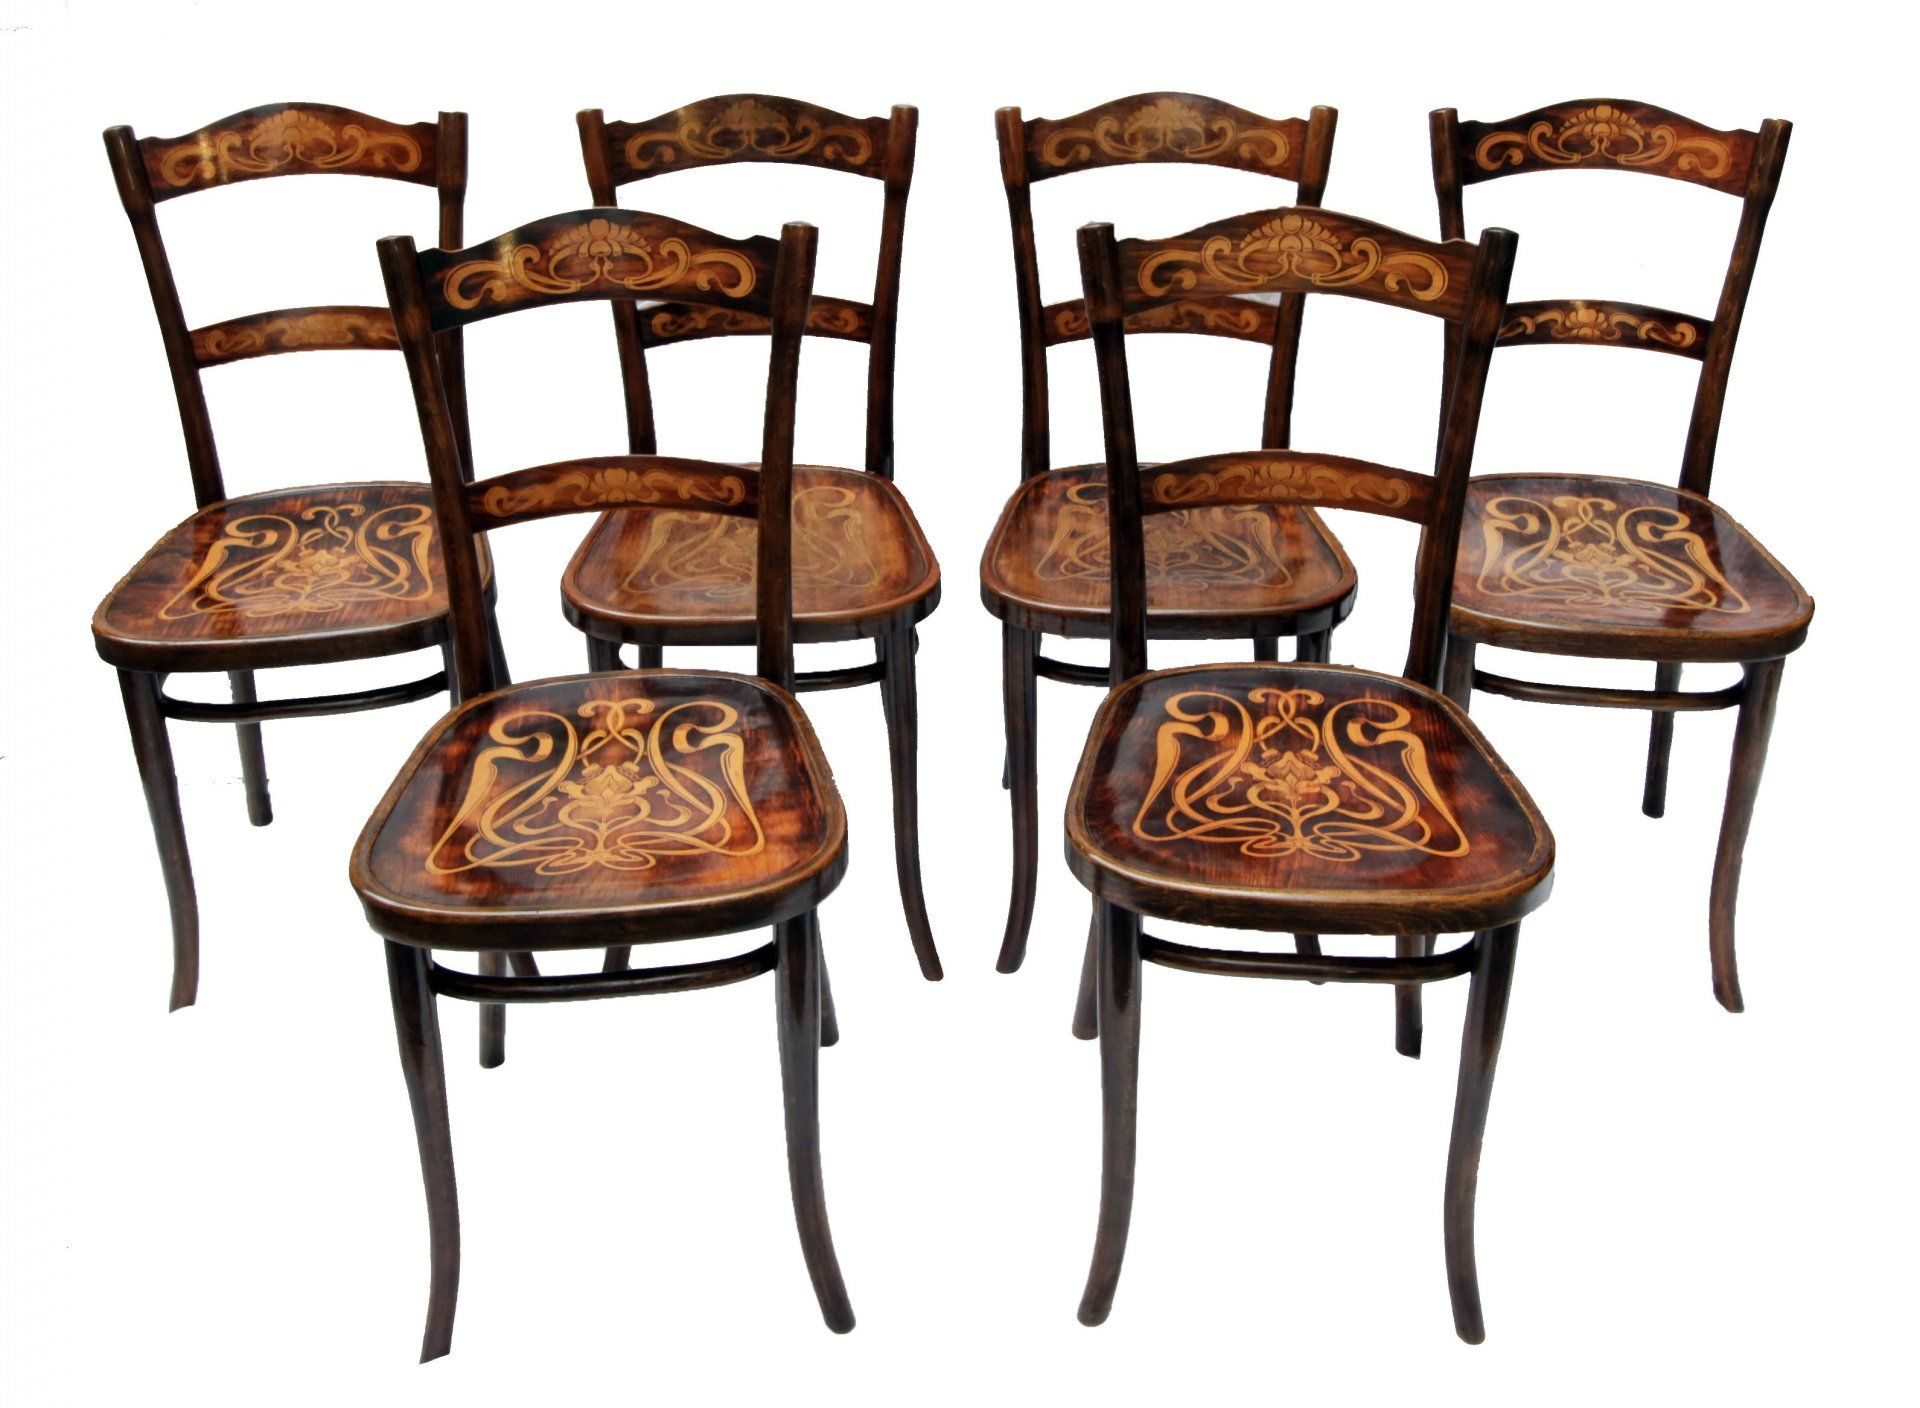 thonet stuhl gruppe 6er satz buche jugendstil. Black Bedroom Furniture Sets. Home Design Ideas